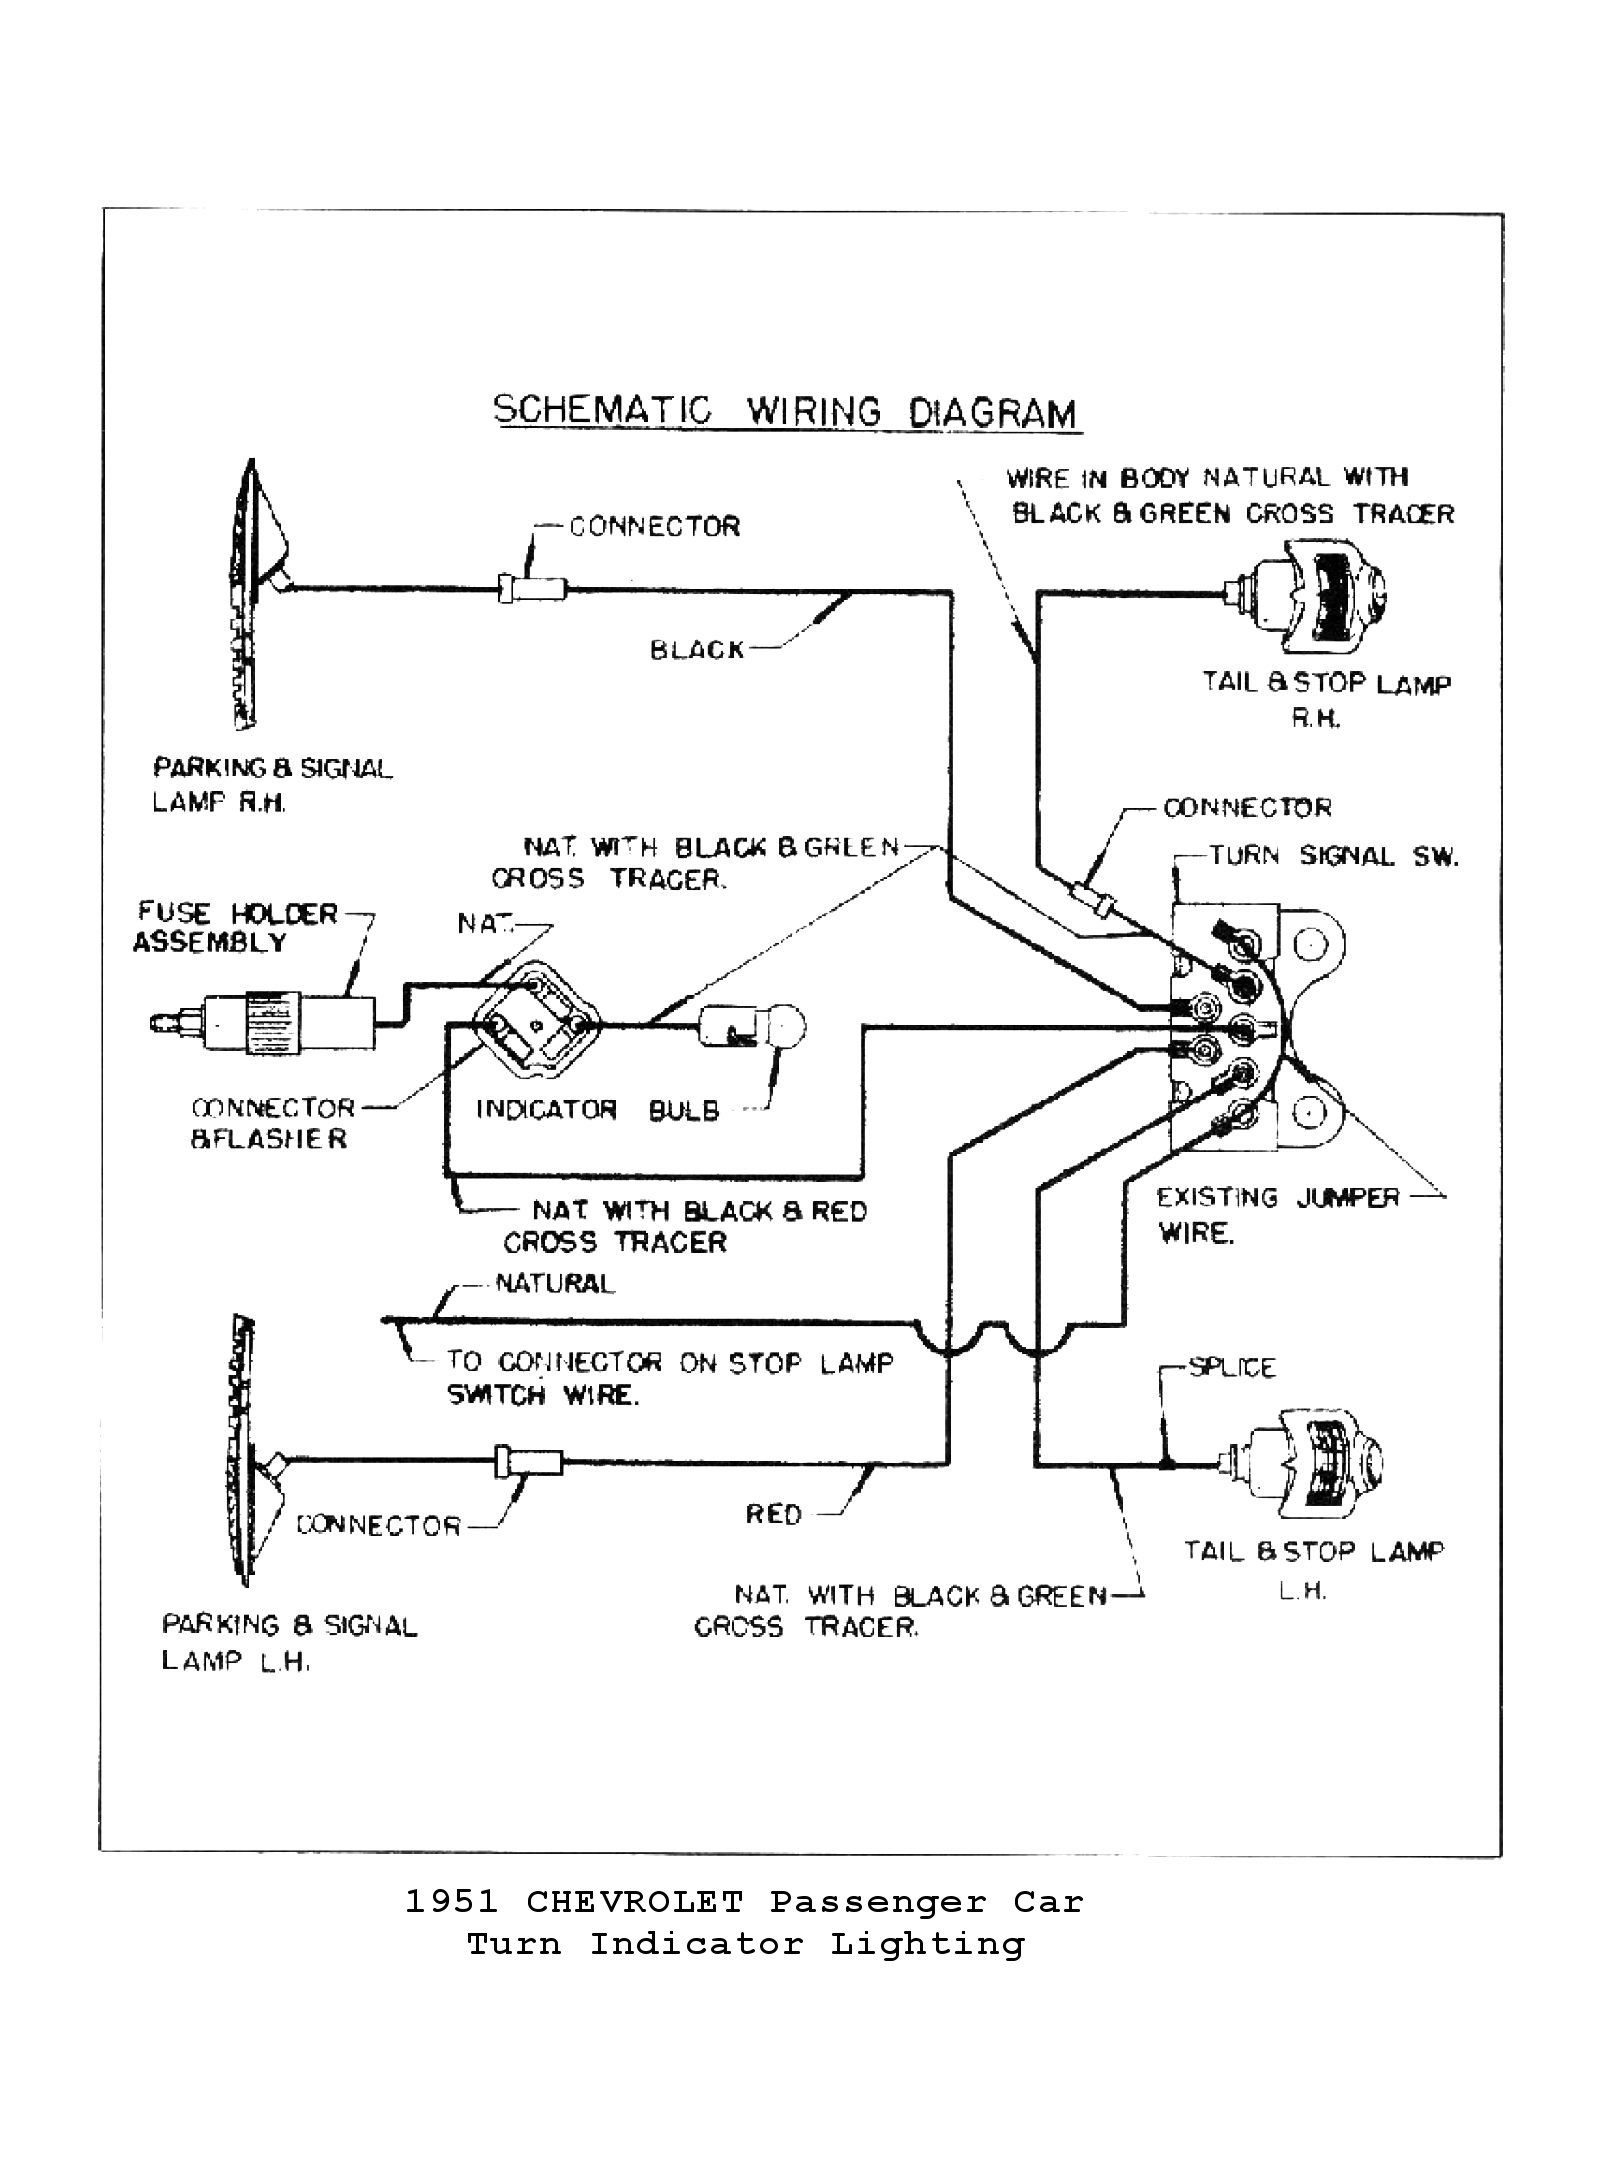 1948 chevrolet wiring diagram wiring diagram schematics chevy truck vin decoder chart chevy wiring diagrams painless wiring diagrams chevrolet 1948 chevrolet wiring diagram